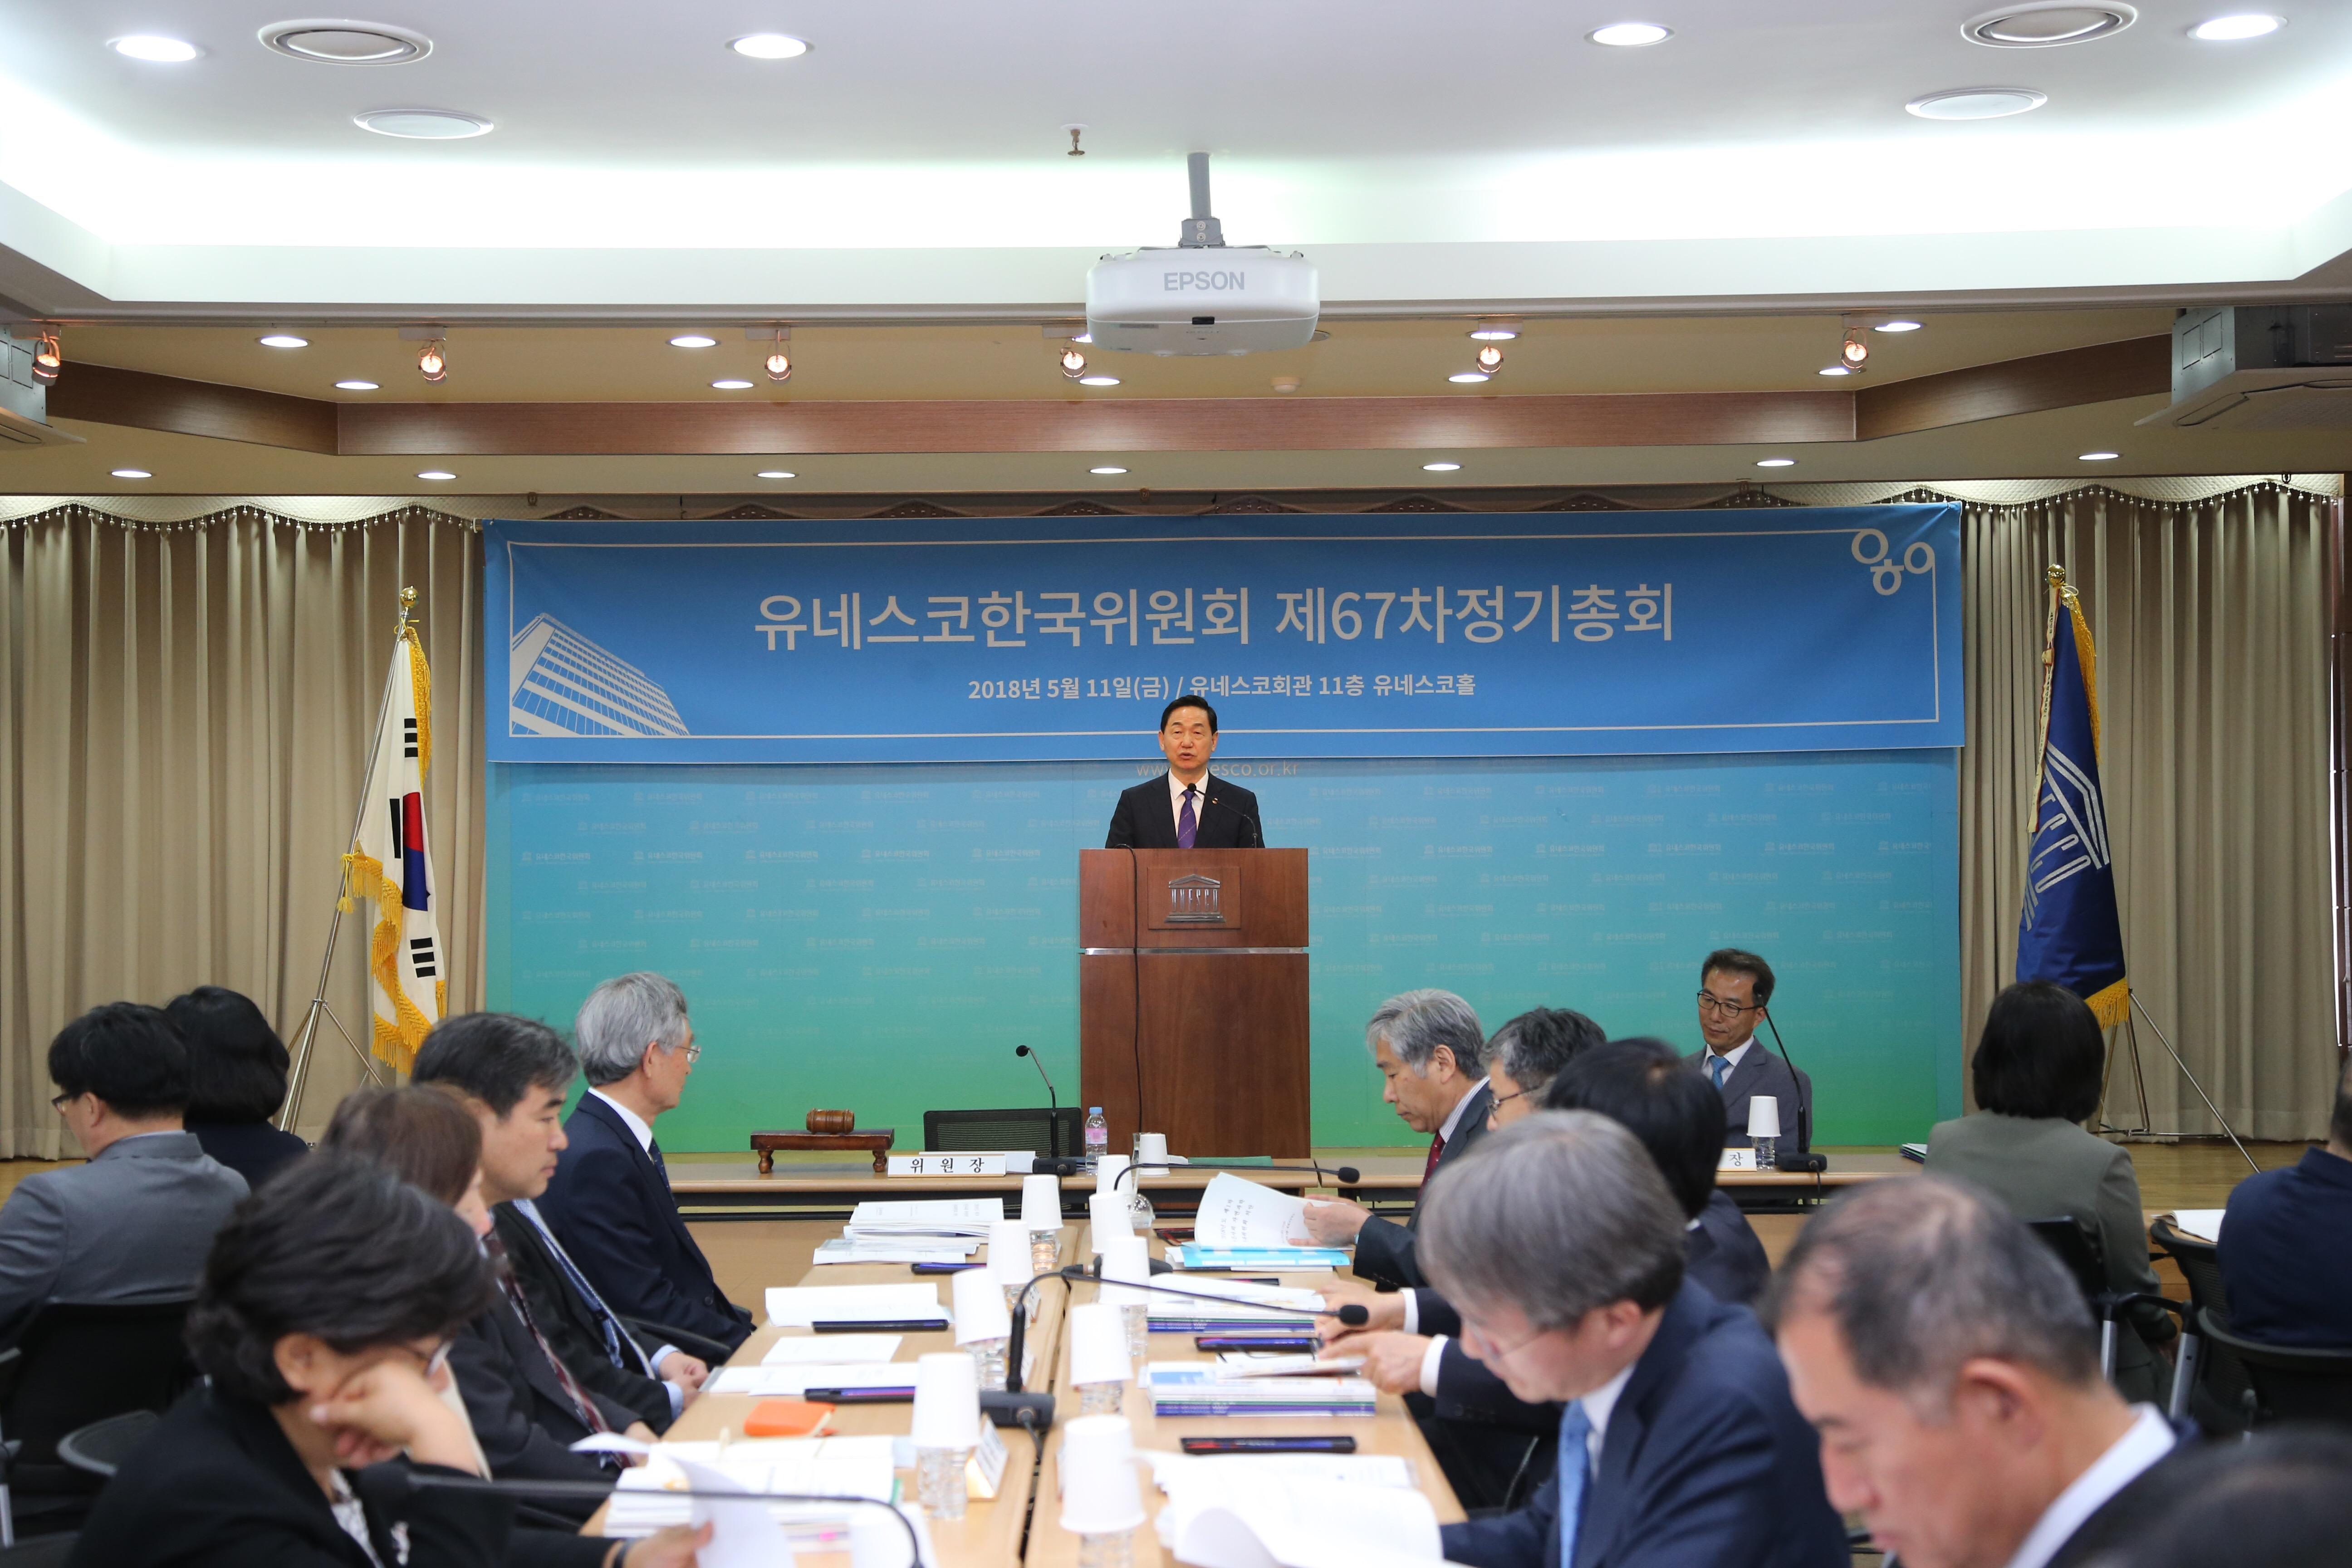 67th General Assembly of the Korean National Commission for UNESCO 사진